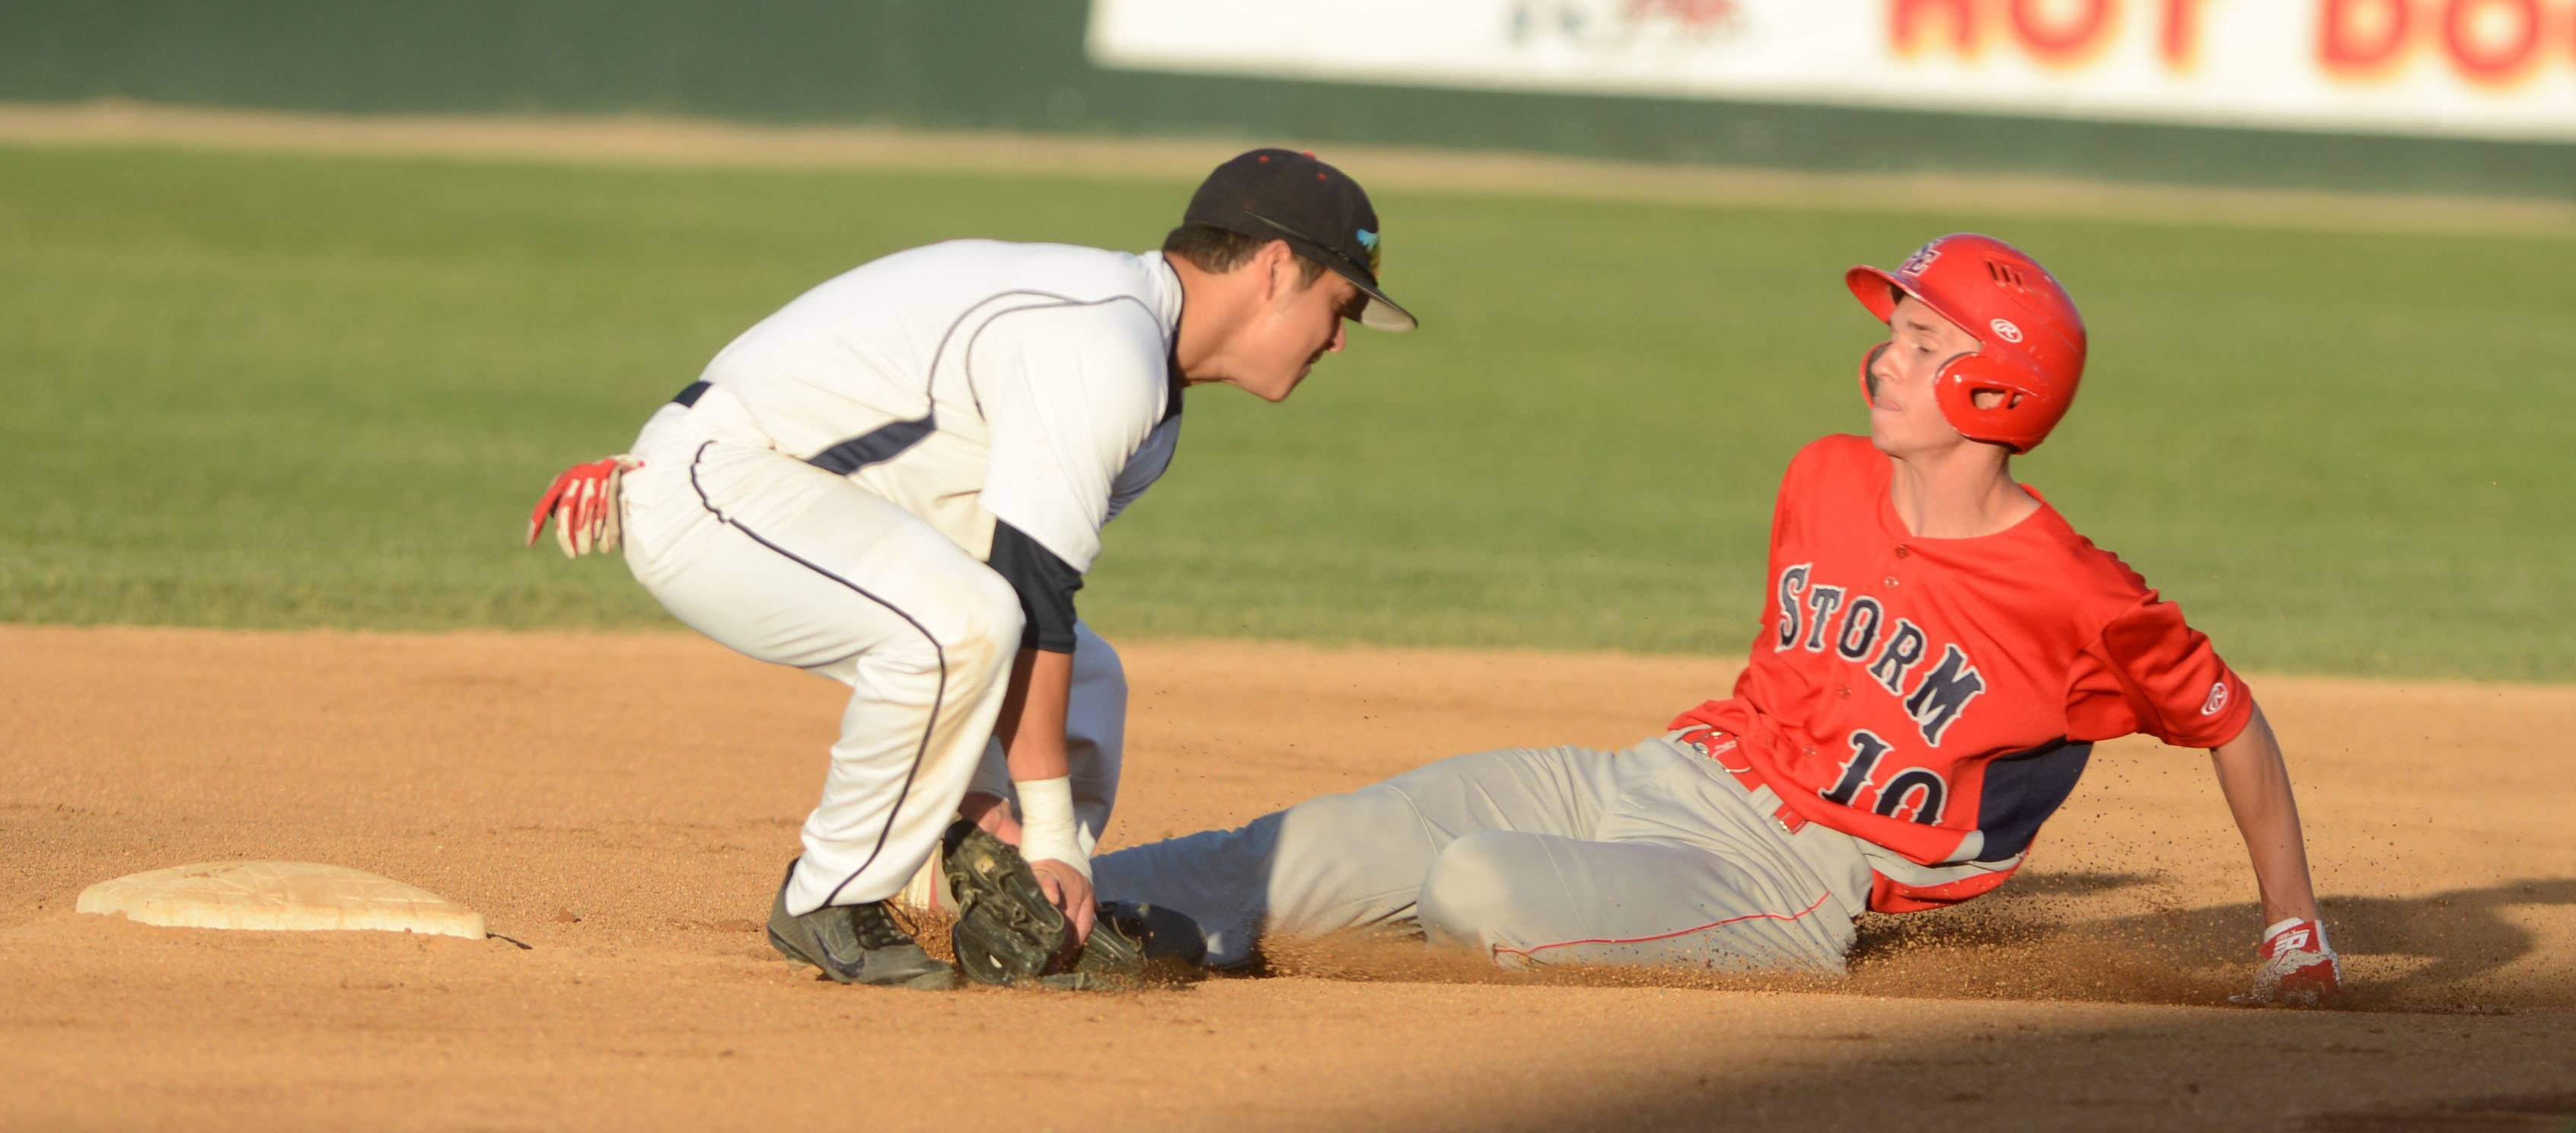 Dan Asa of South Elgin slides into second base as Chris Delgadillo of St. Rita attempts to make the tag during the Class 4A baseball state semifinals Friday in Joliet.